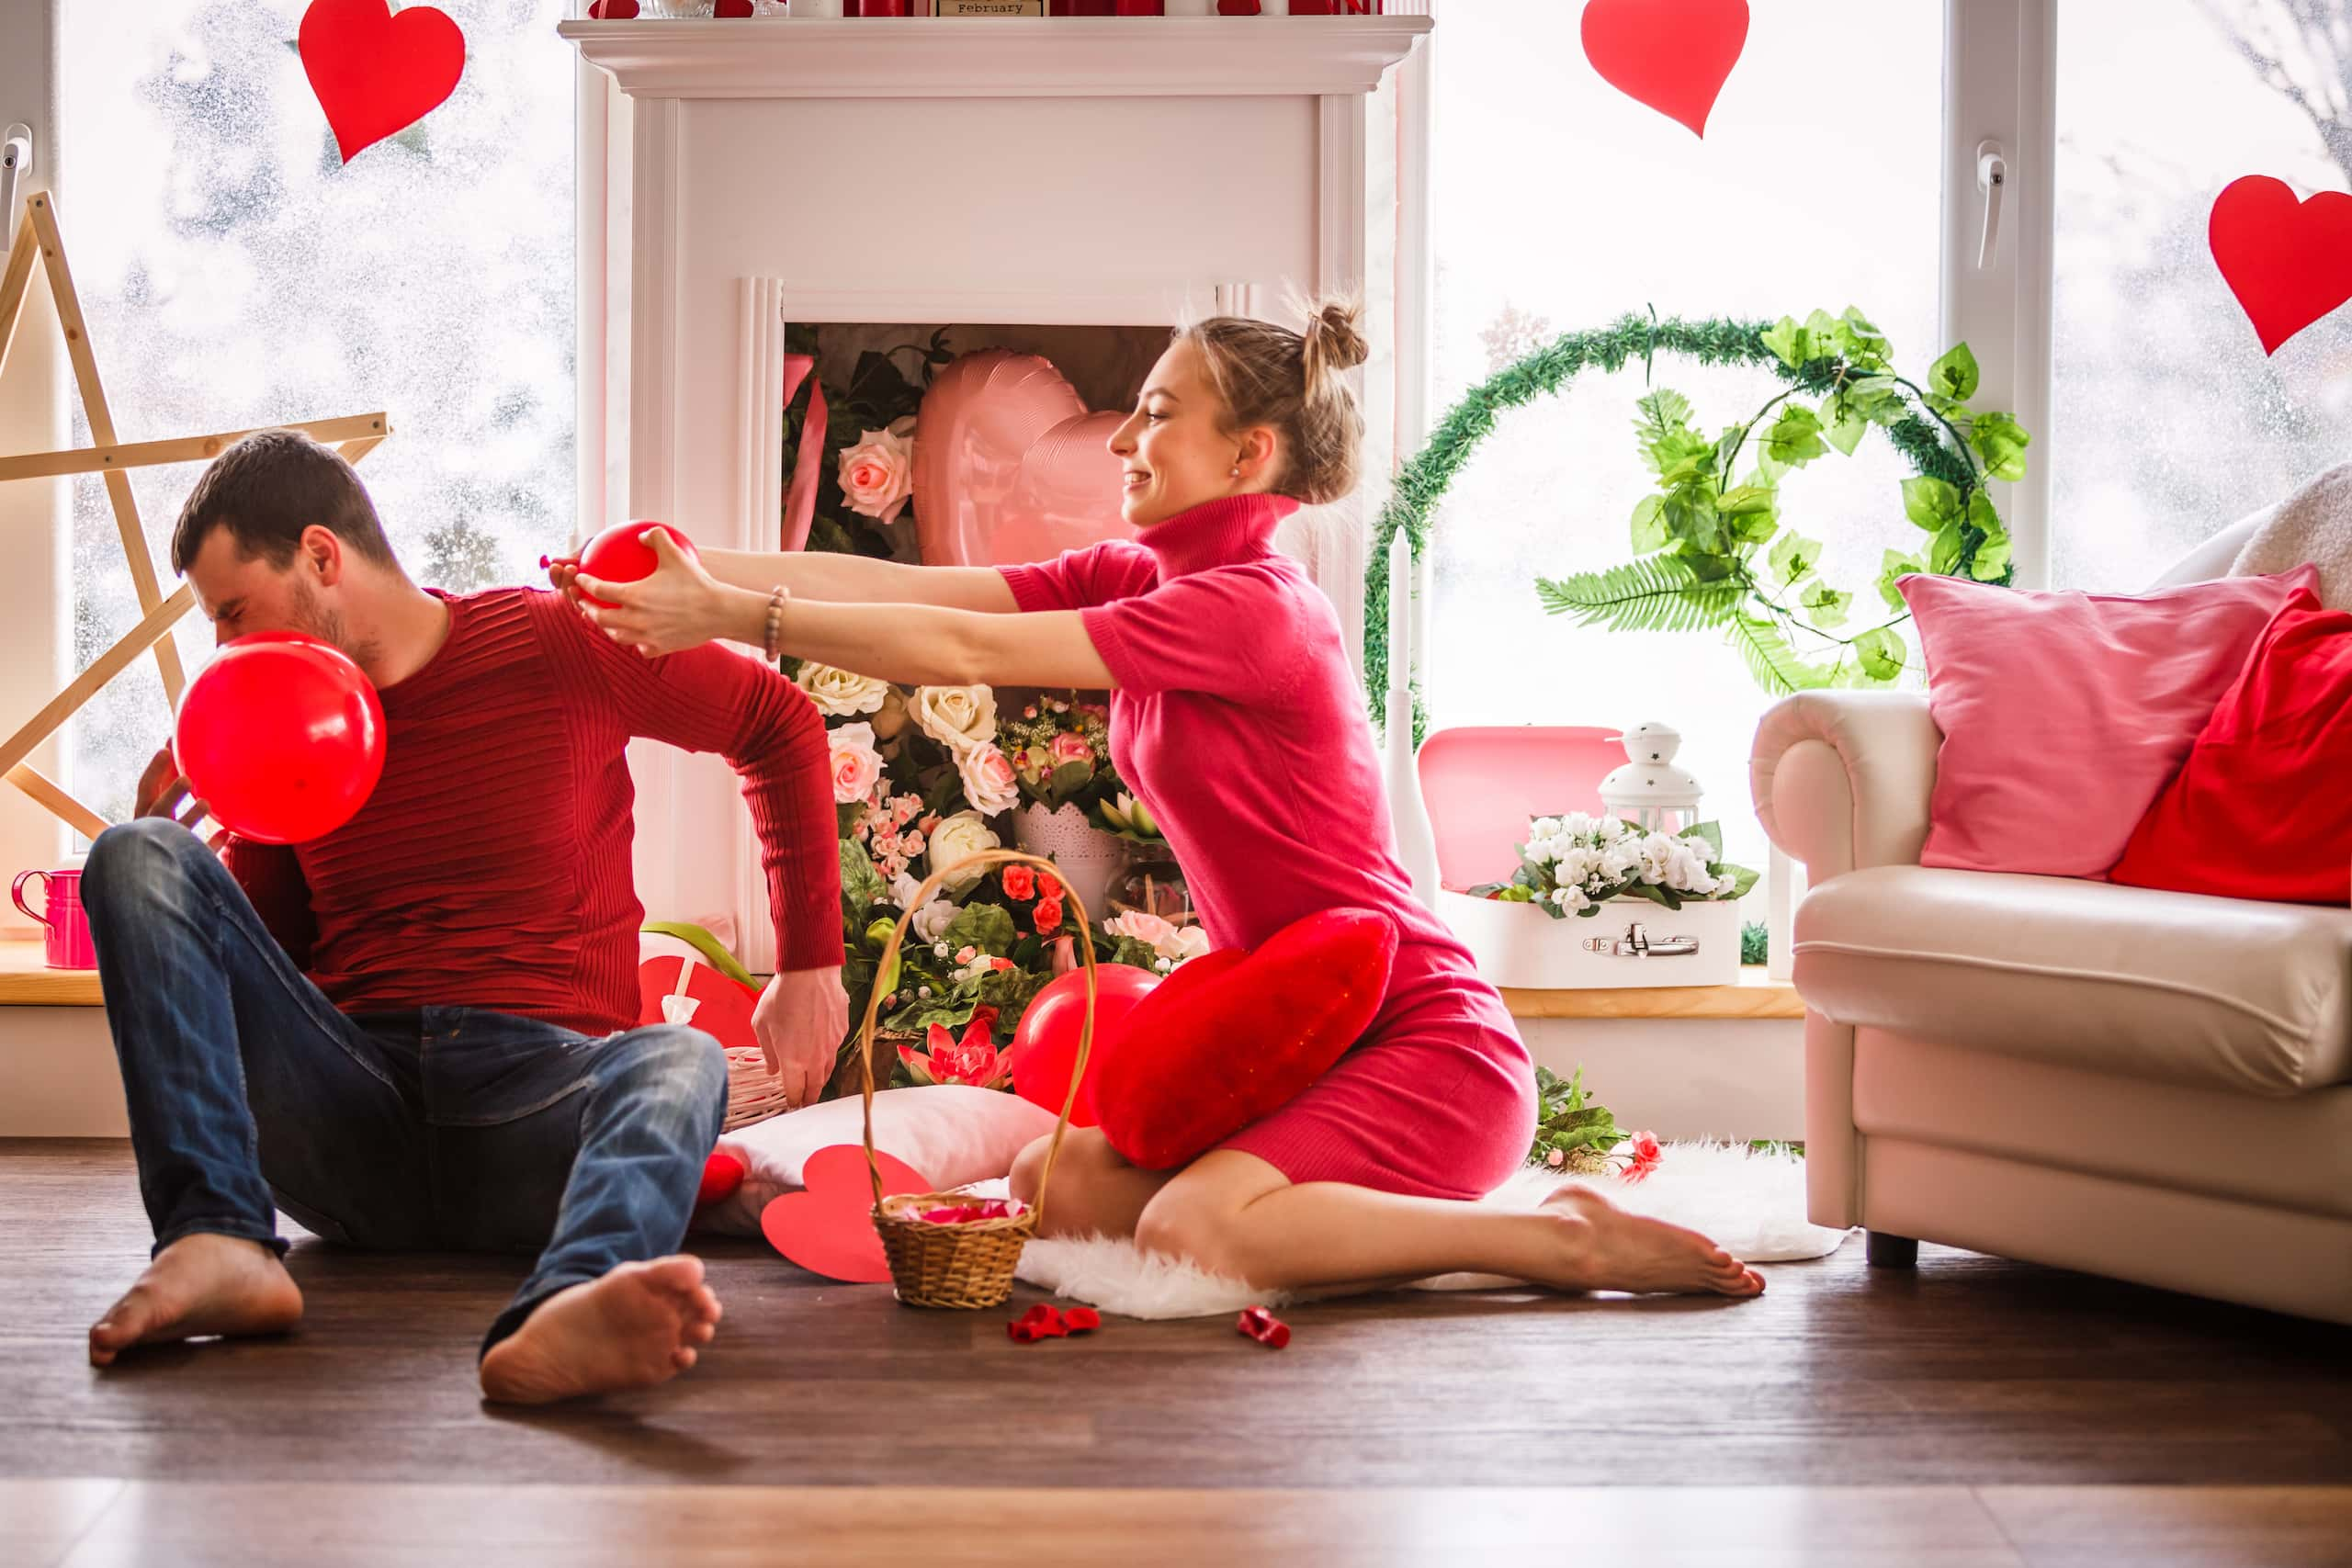 How to Celebrate Valentine's Day 2021 at Home